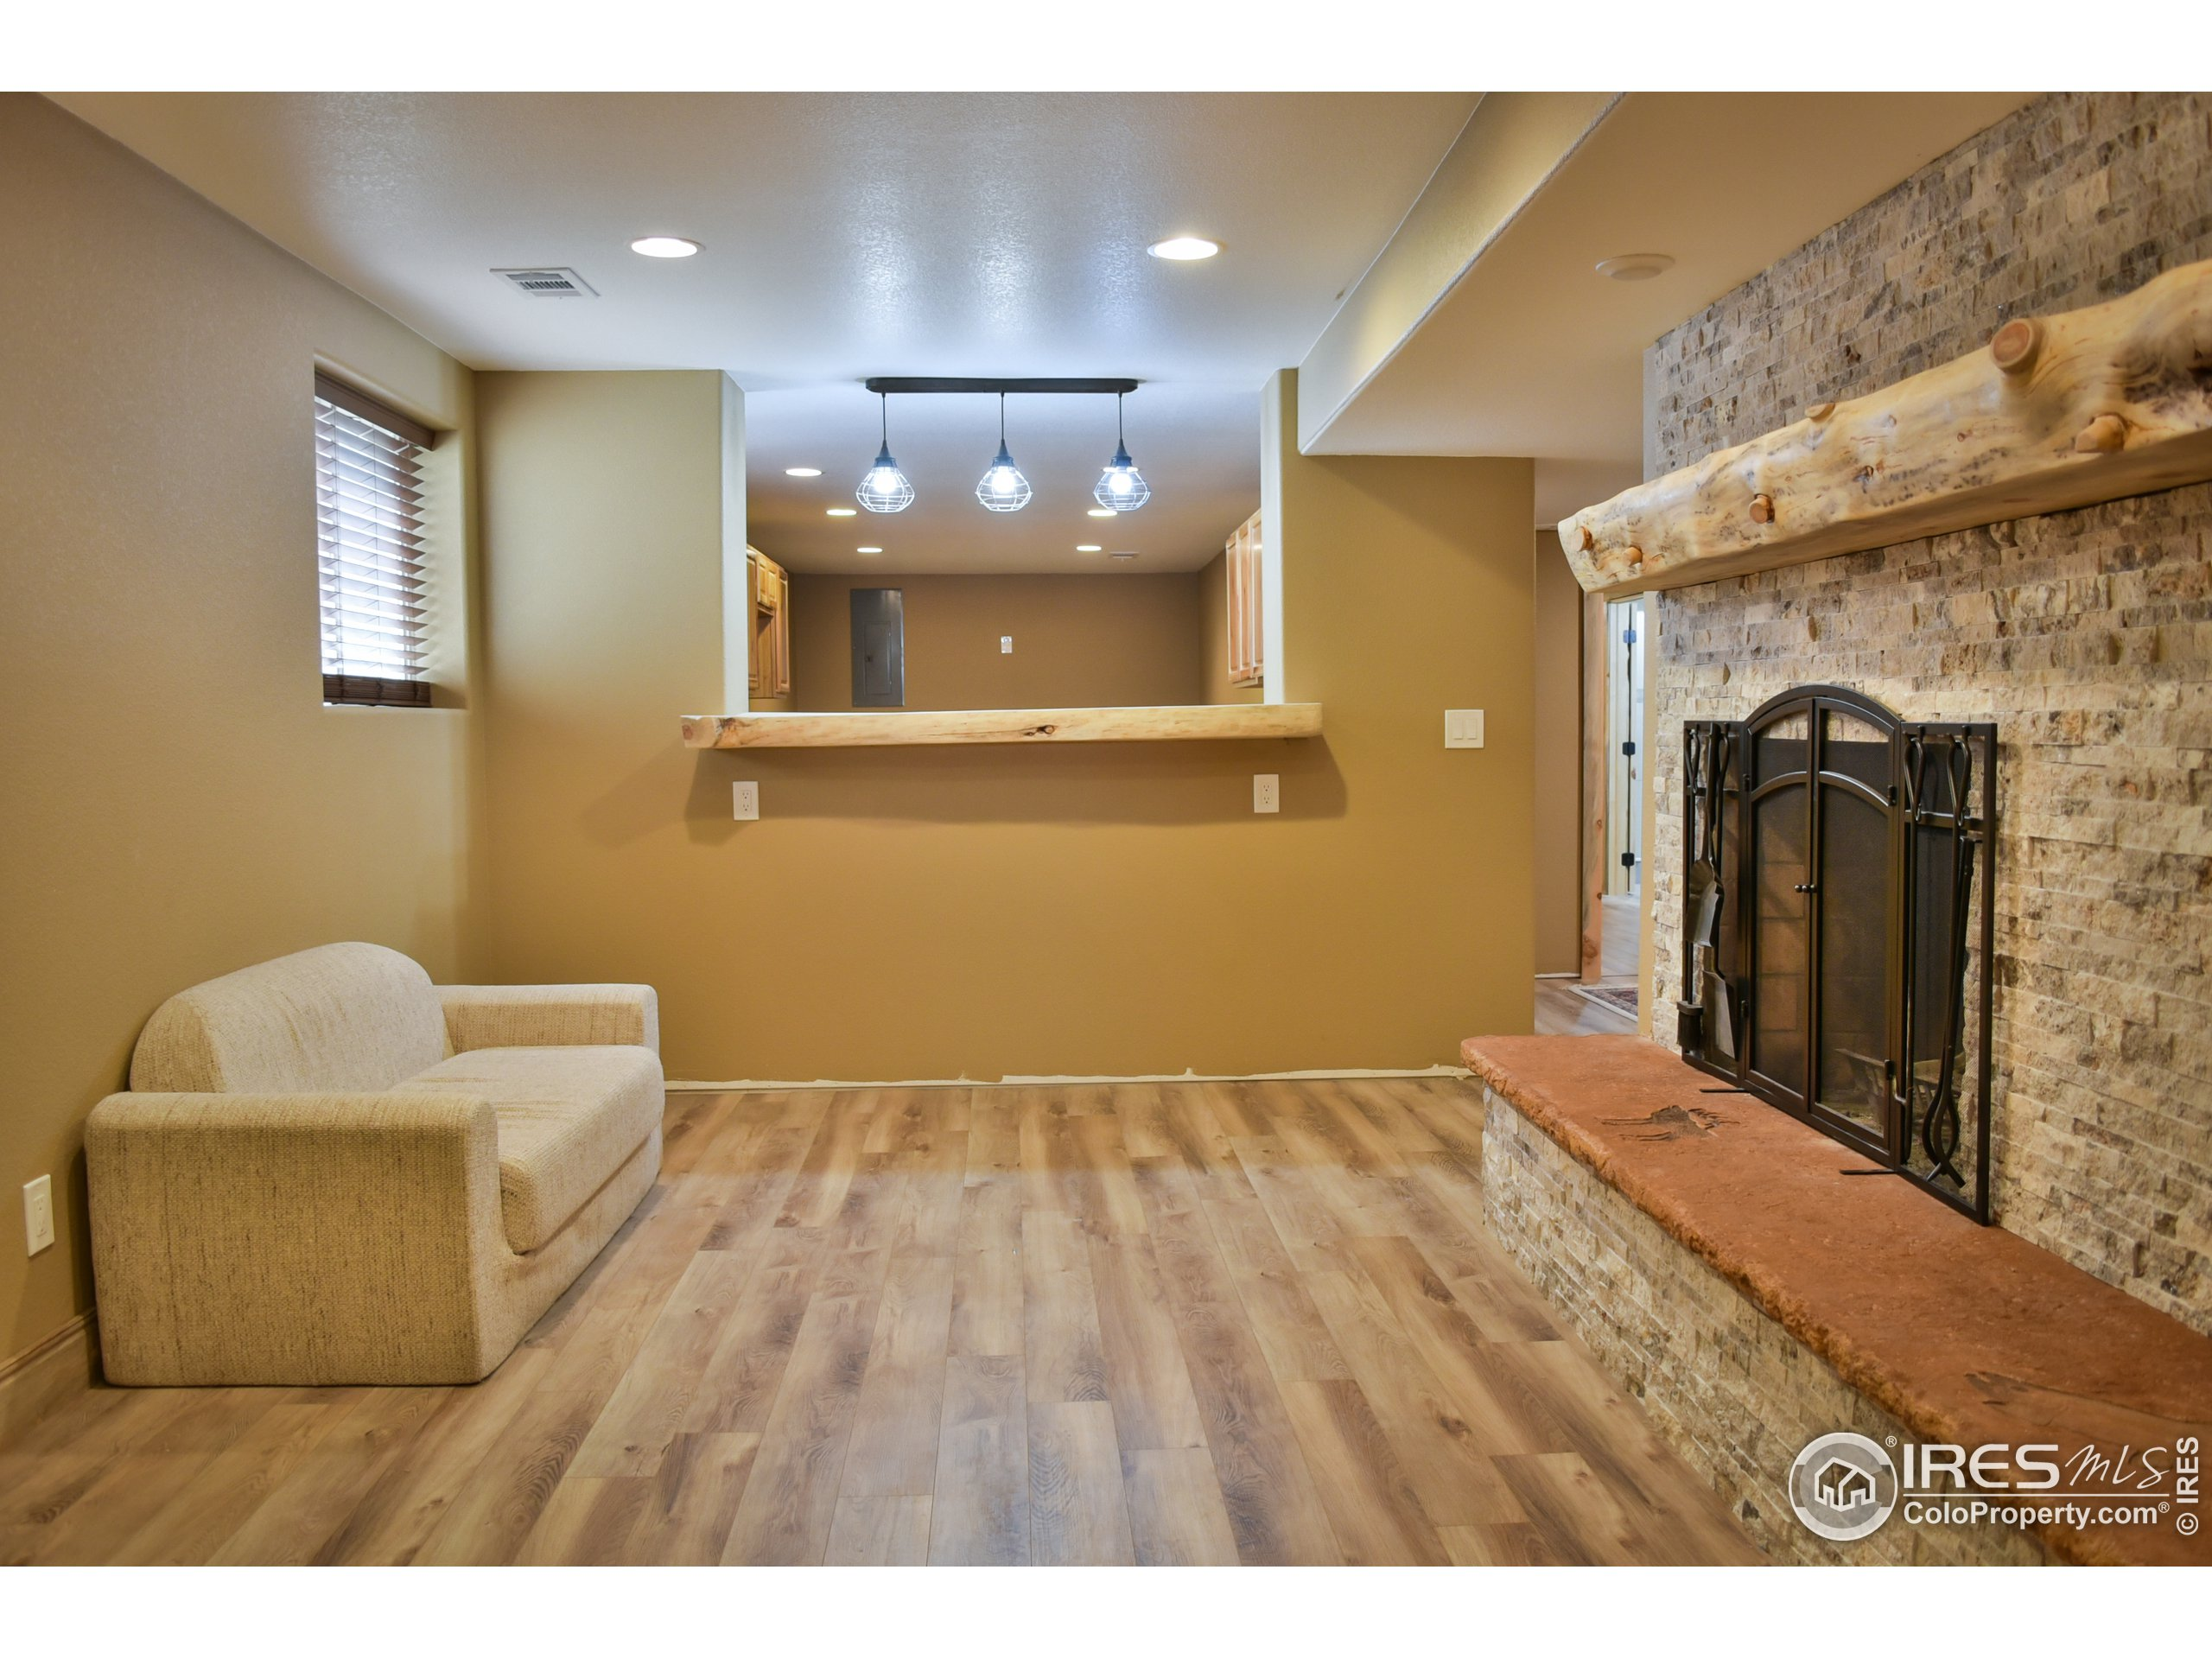 Basement hearth room with view to kitchen.